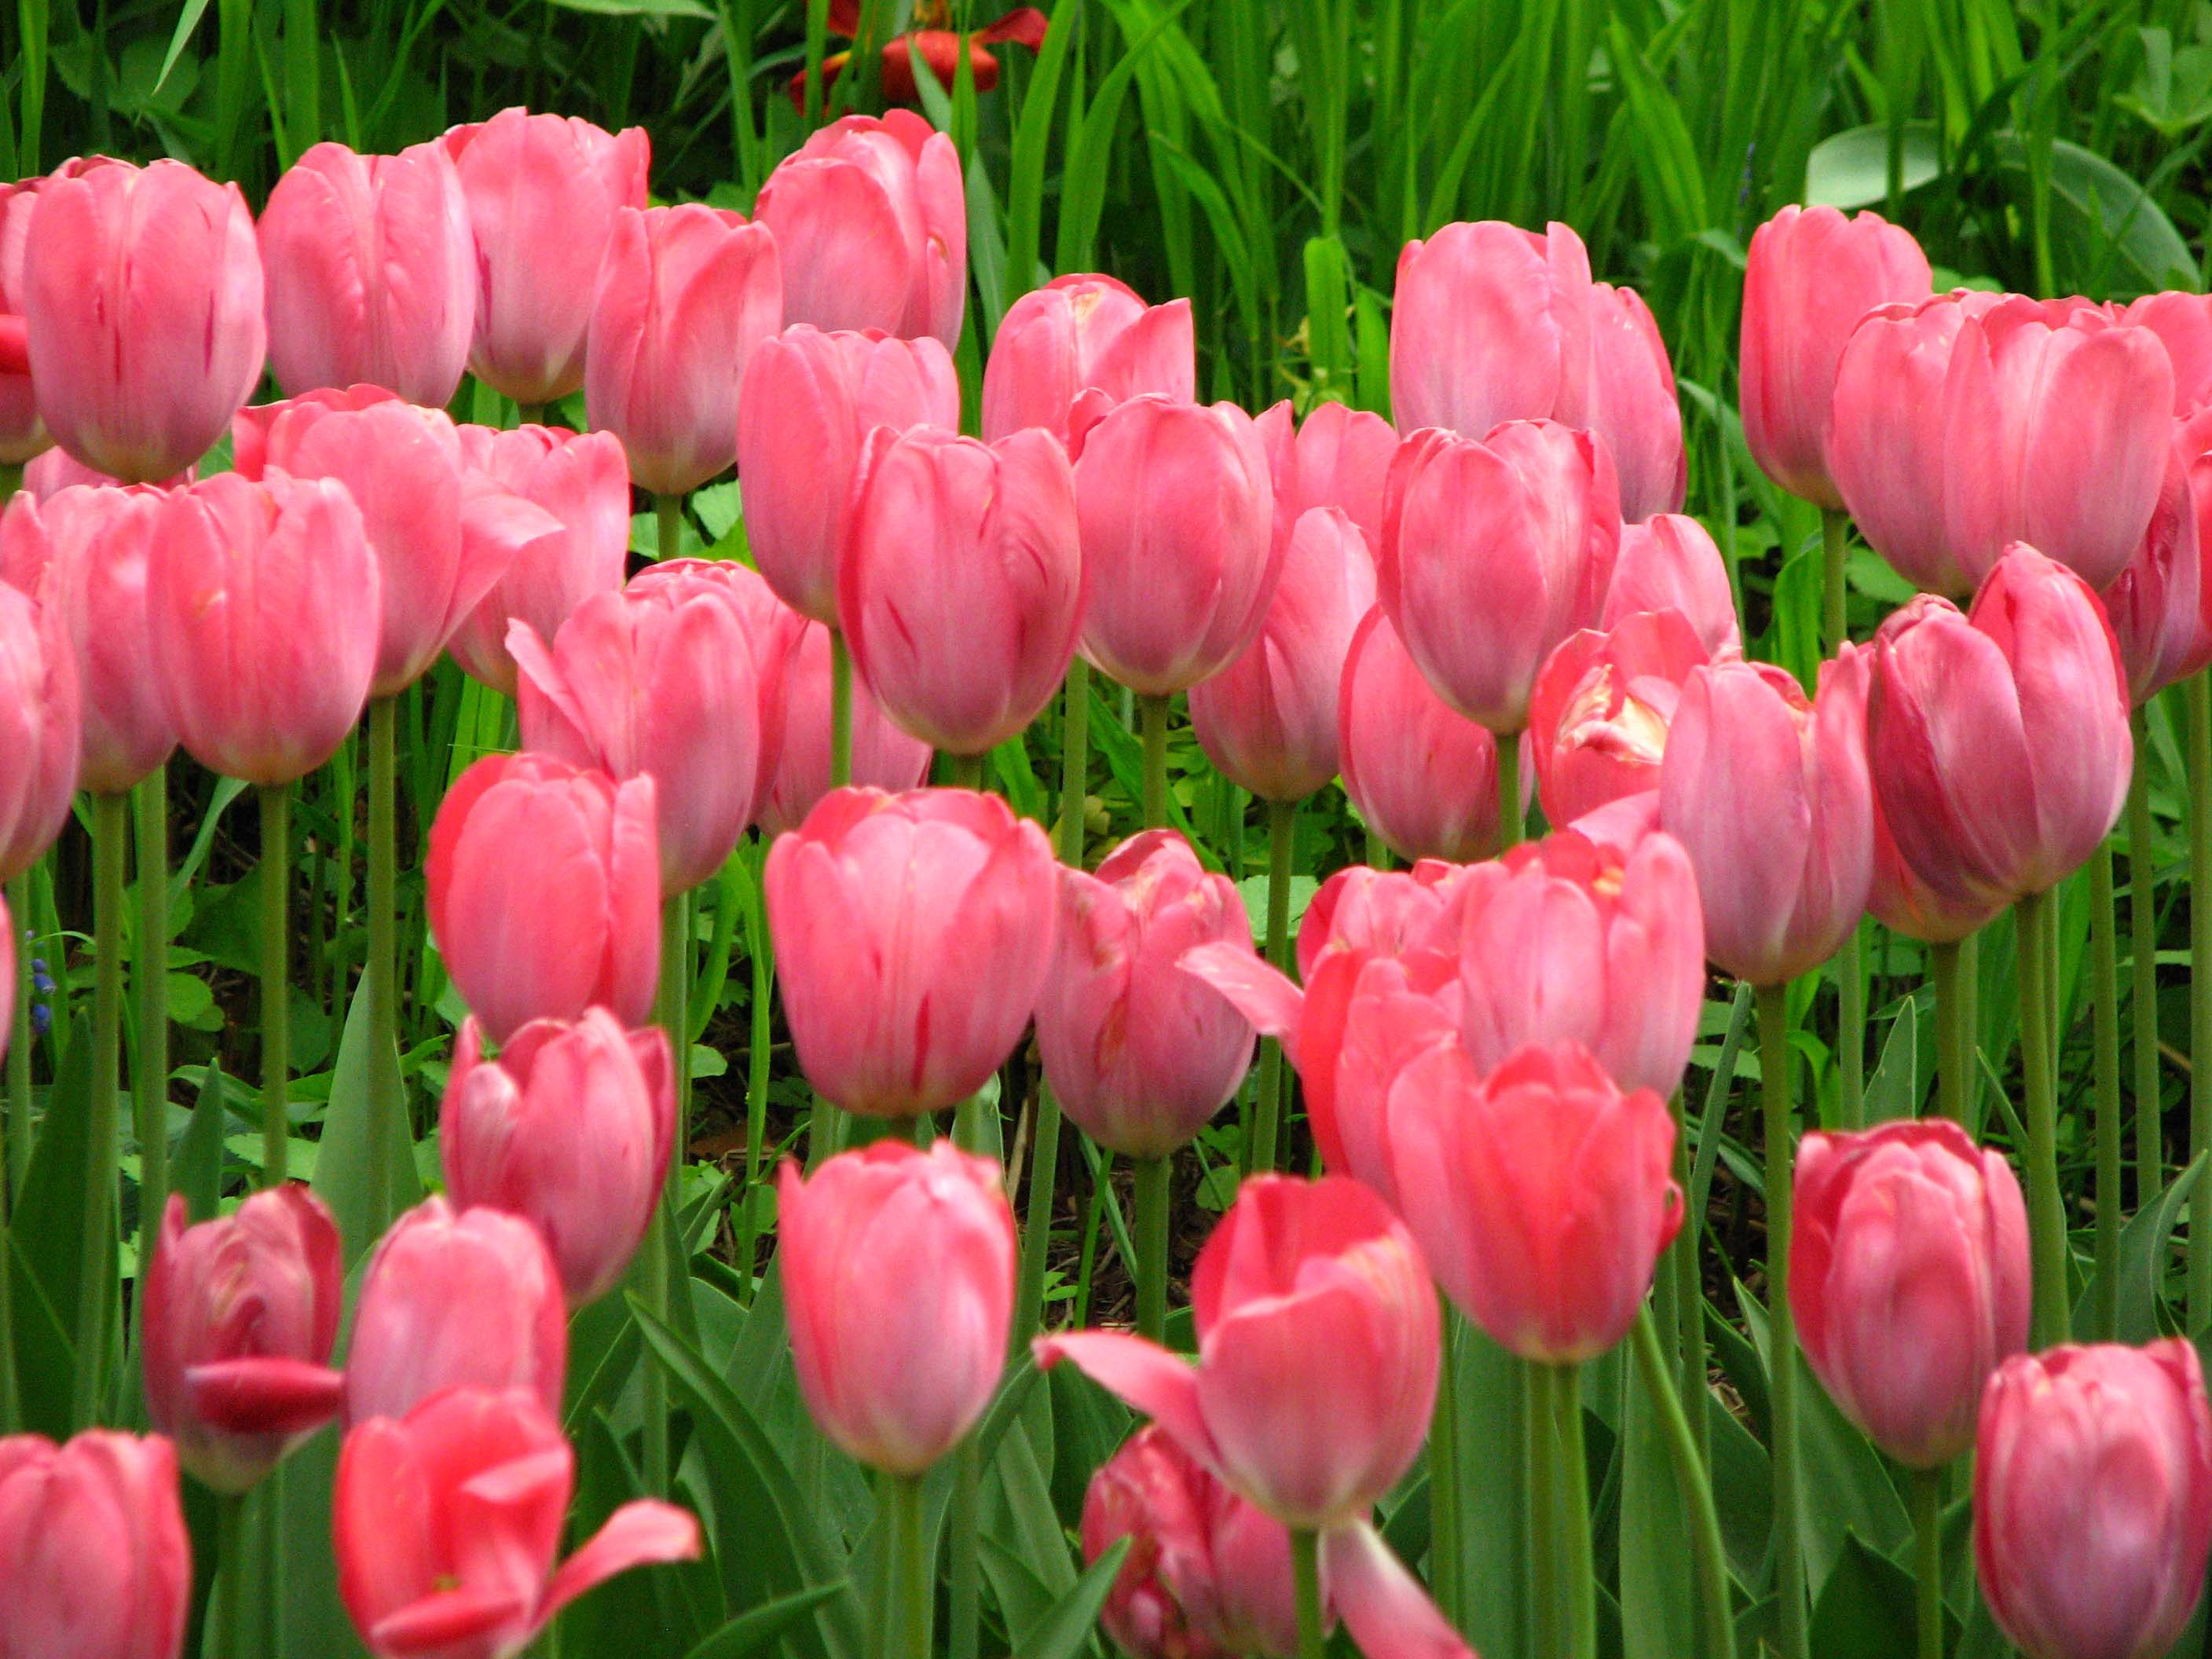 Pink Tulips Scenery Free Download Images